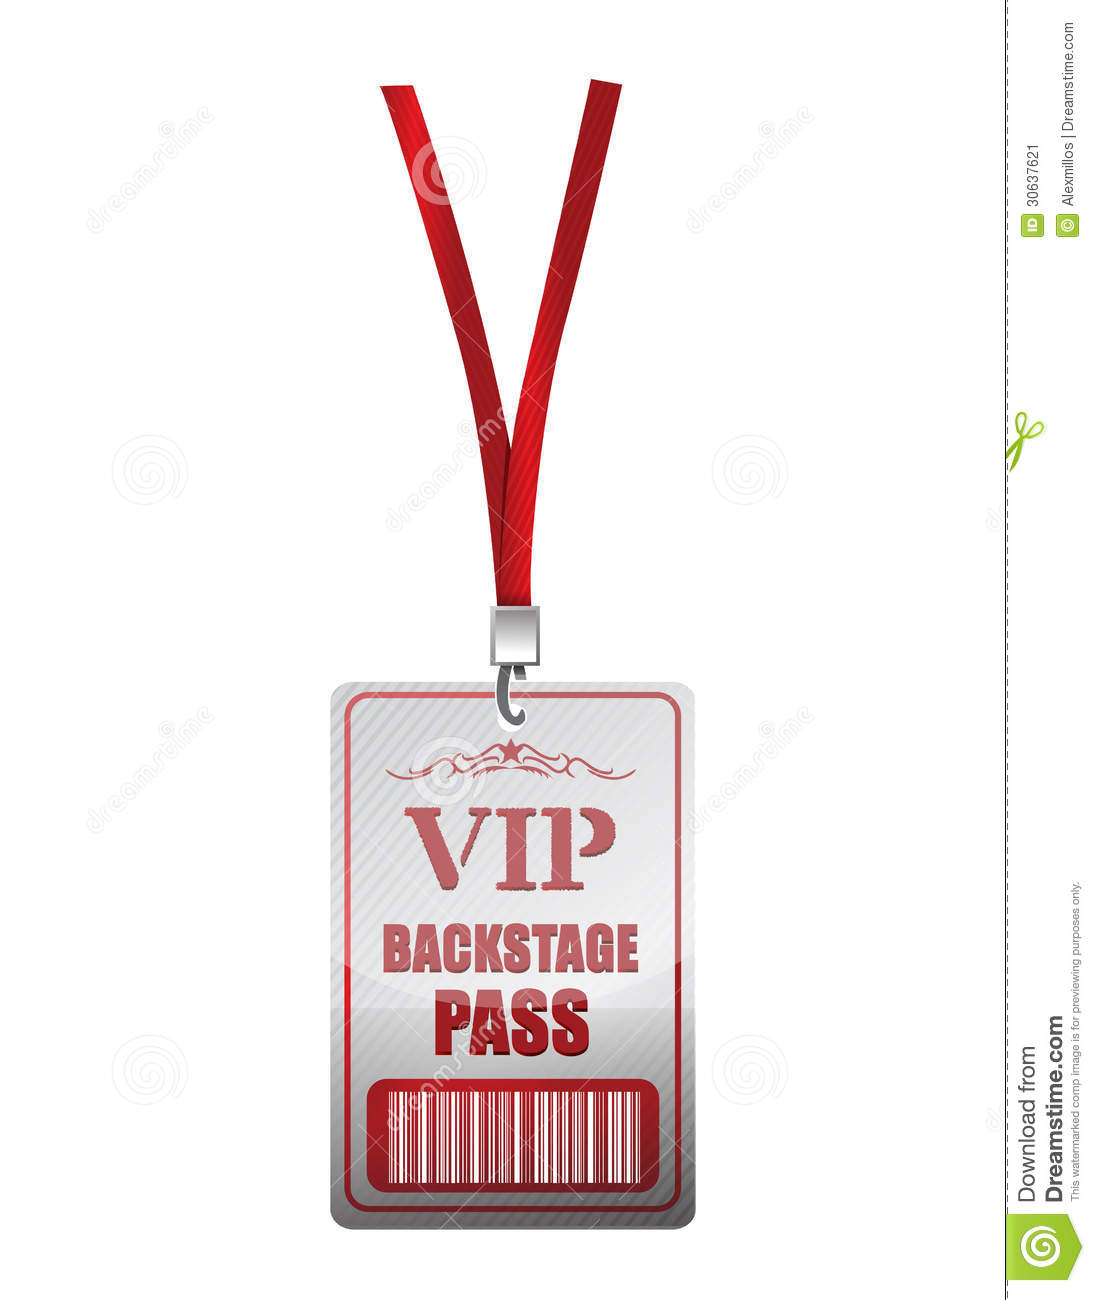 Backstage Pass Vip Illustration Design Stock Image Image